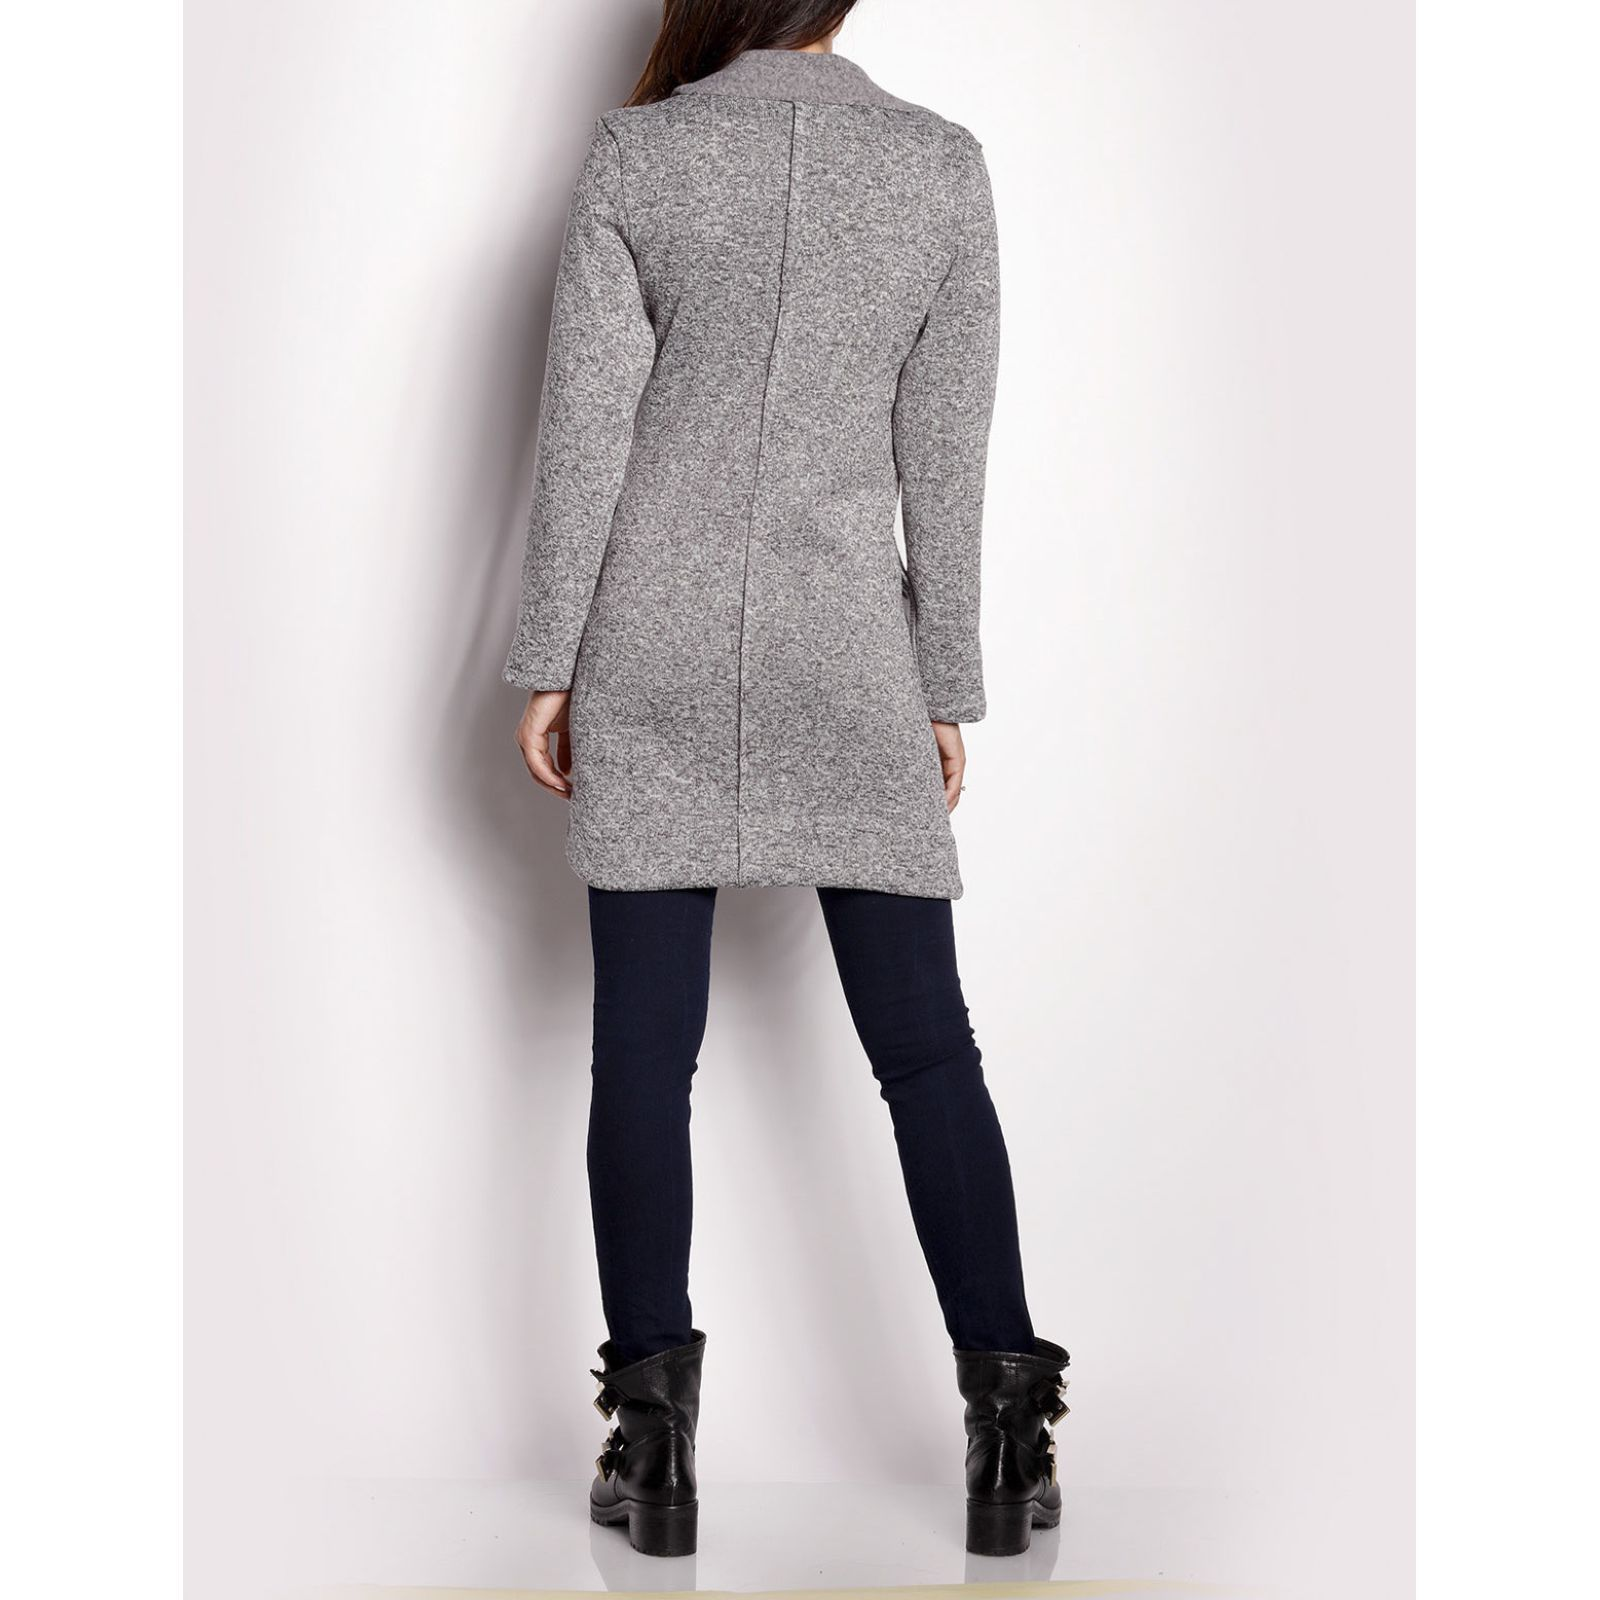 My Favorite Top Manteau - gris   BrandAlley 36ebf65f3c1